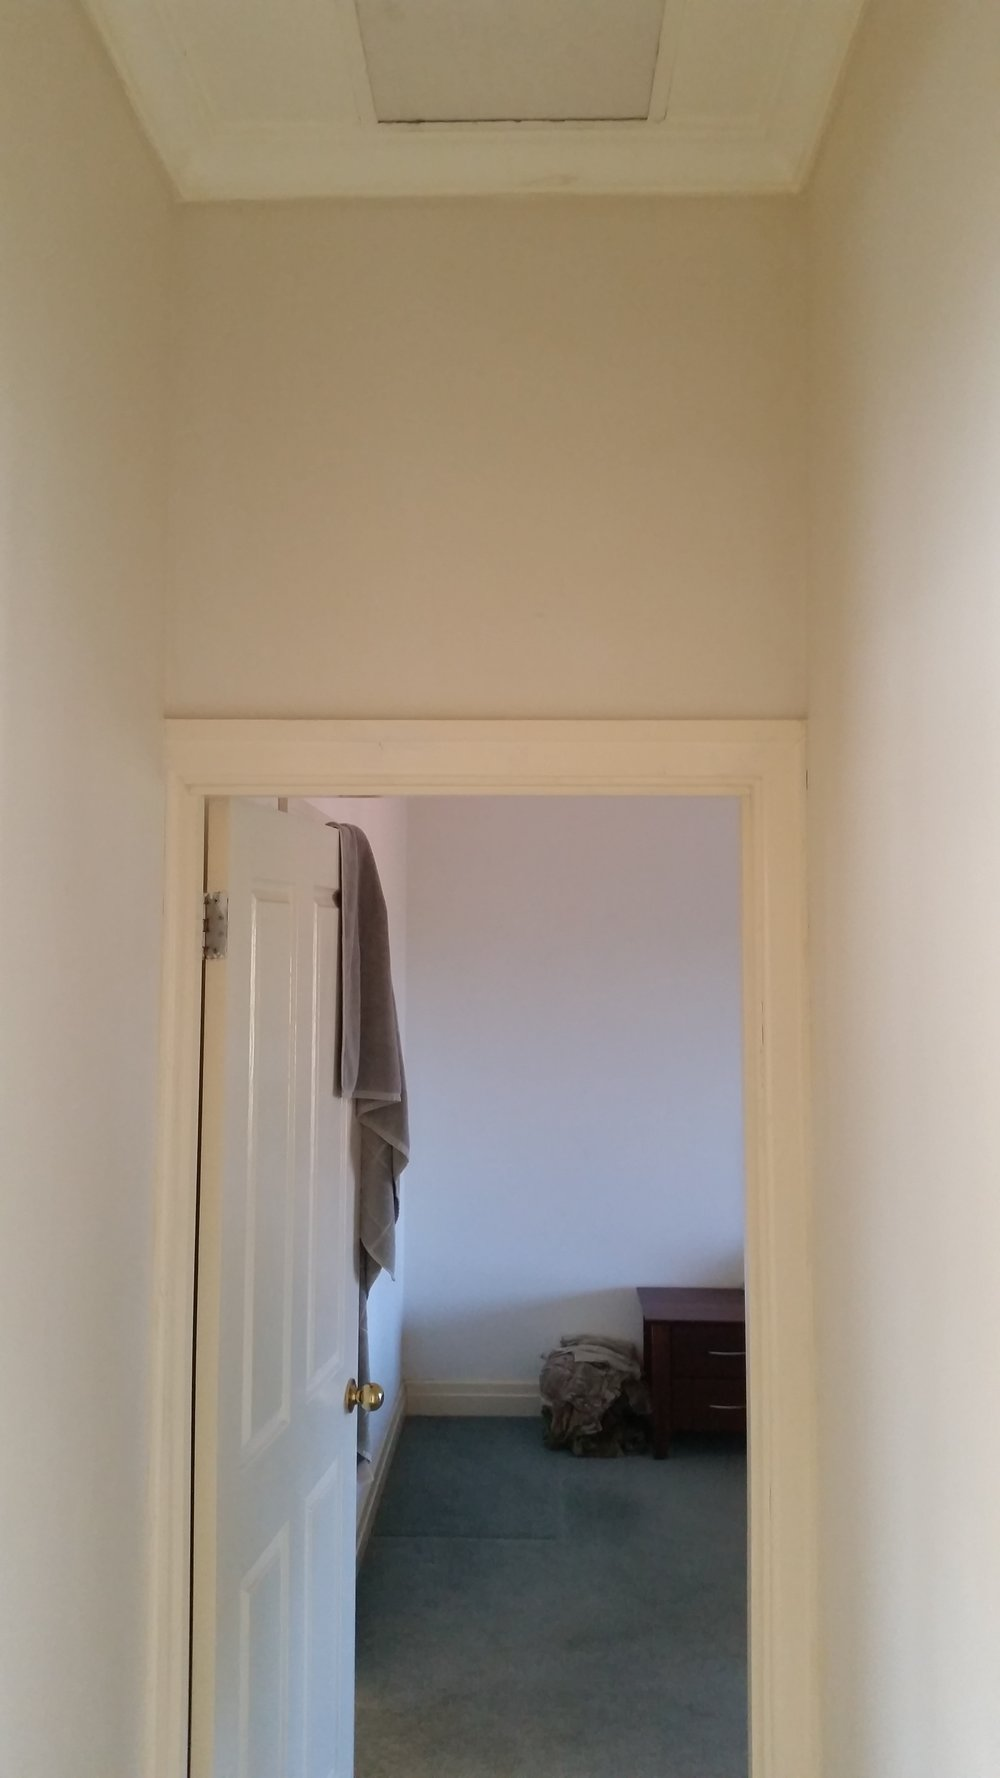 Bathroom renovation before - Doorway into bedroom